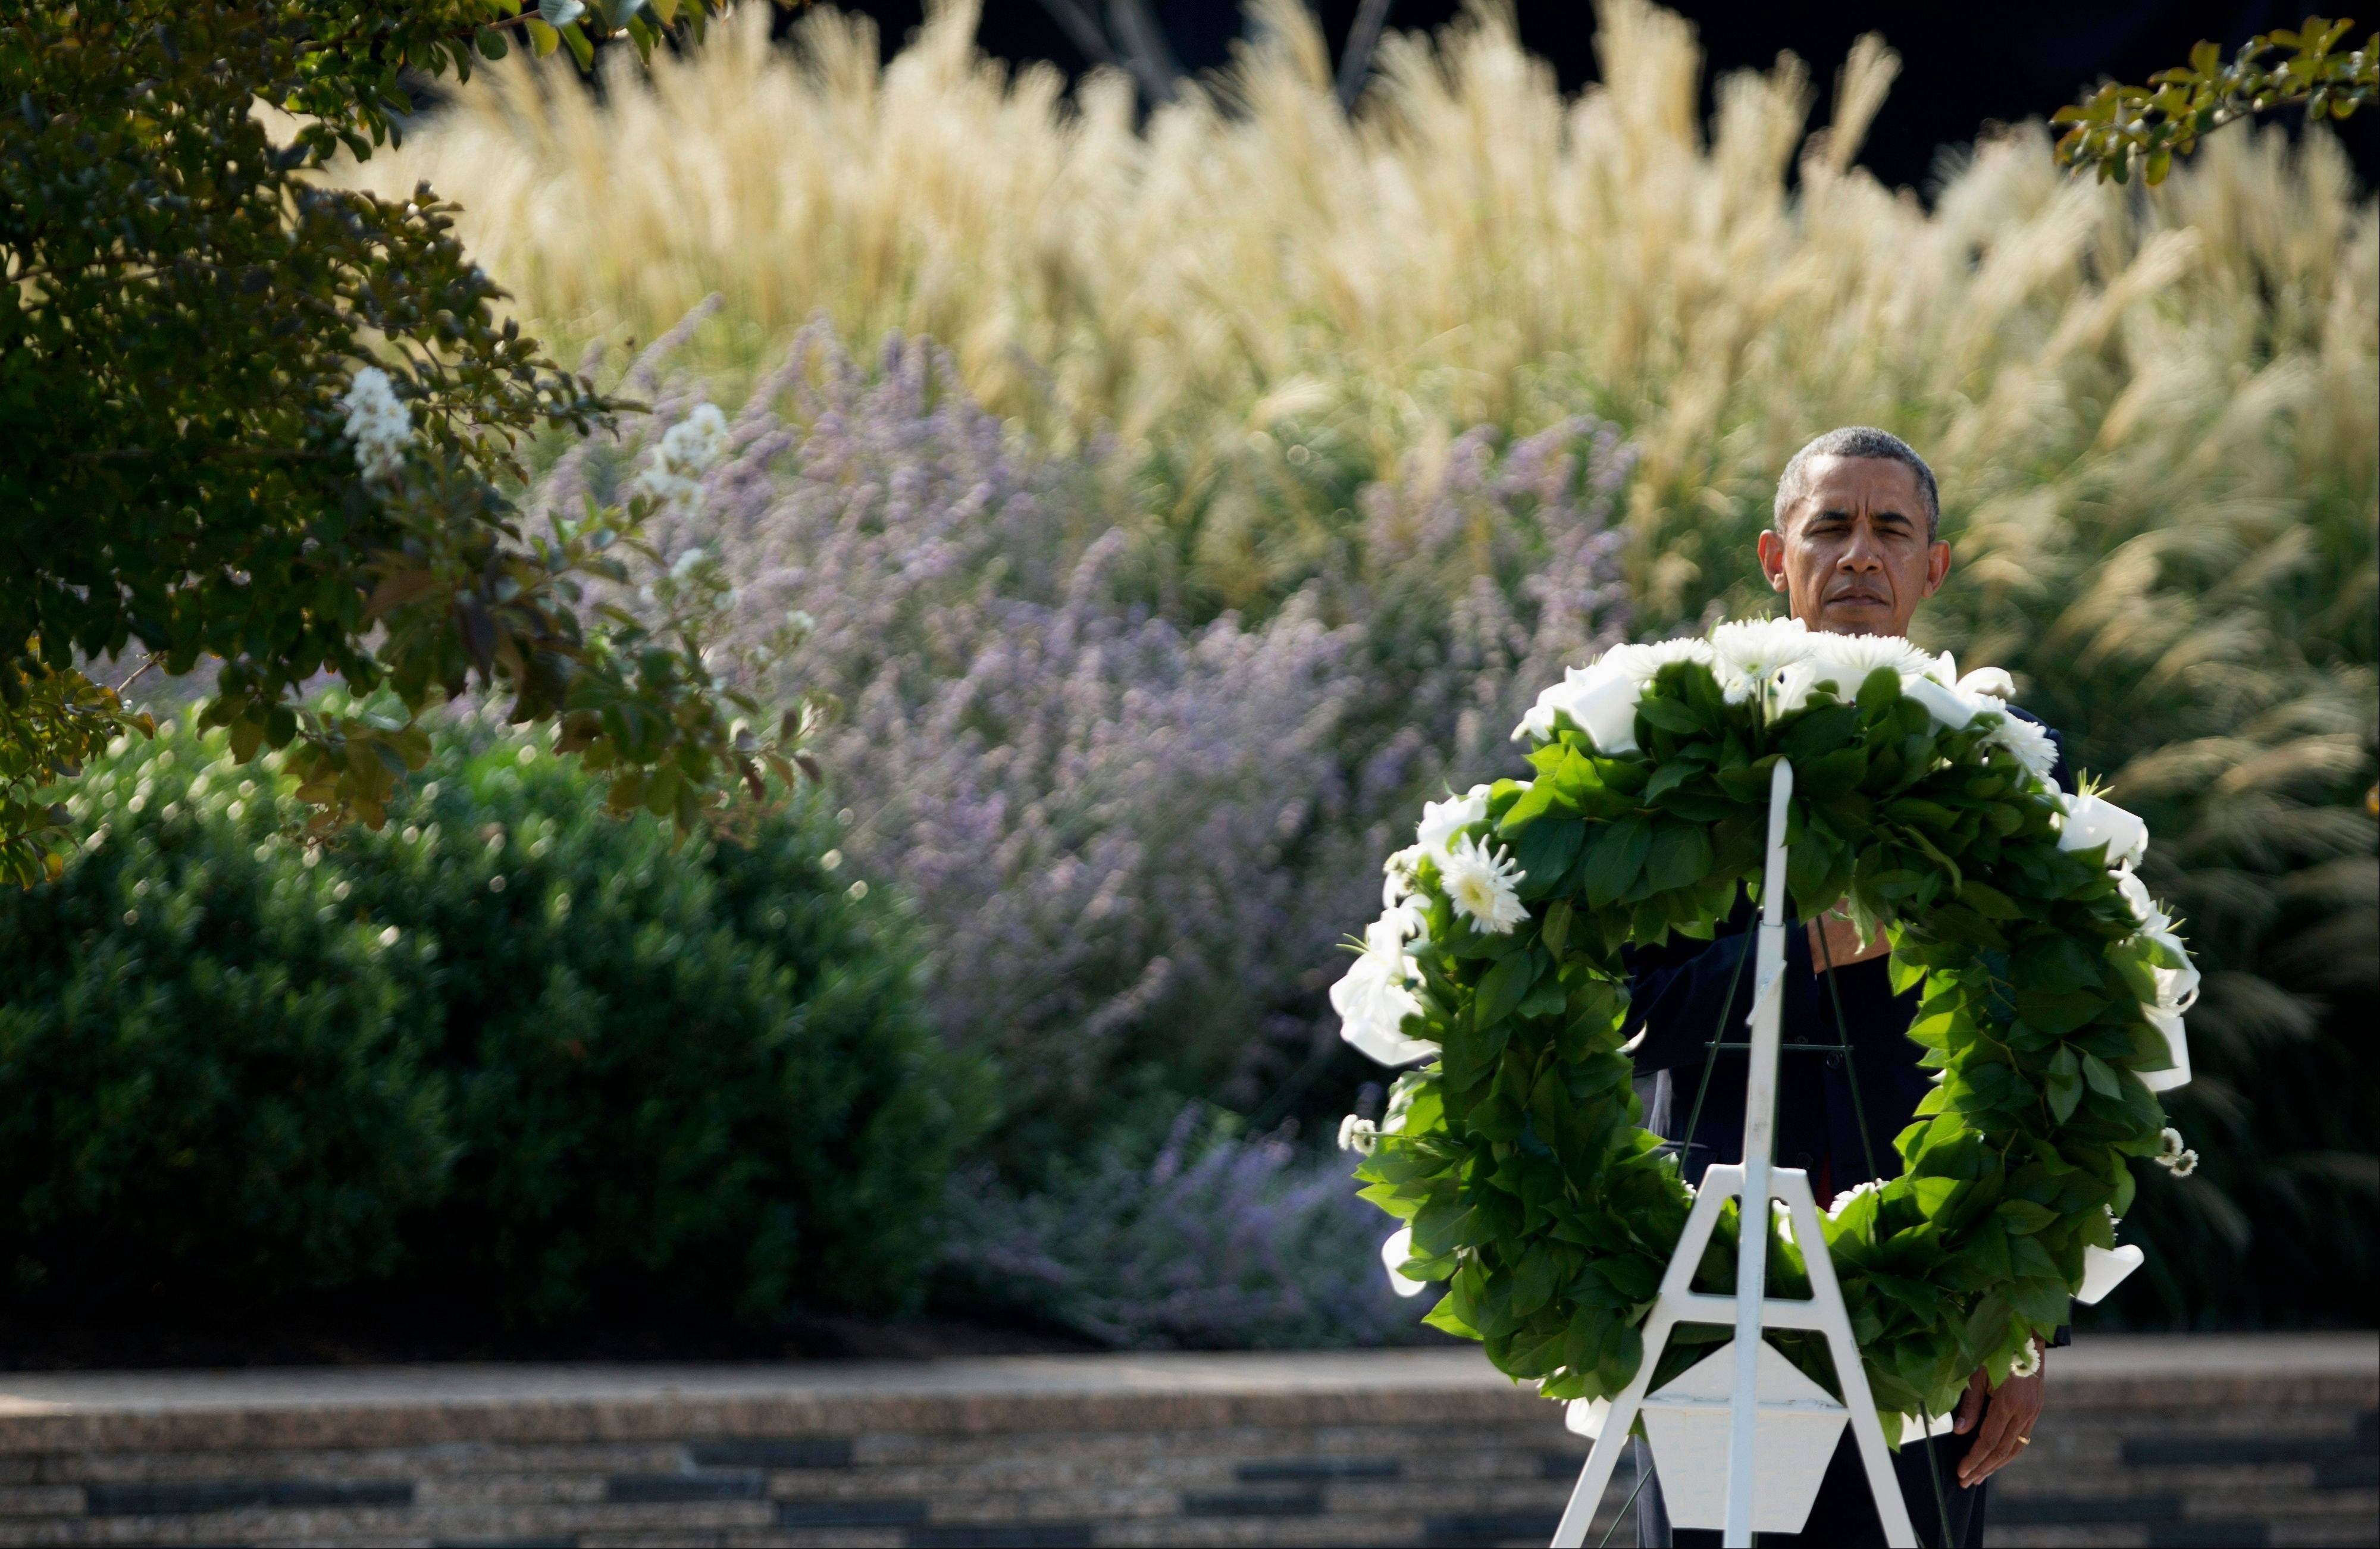 President Barack Obama lays a wreath at the Pentagon, Wednesday, Sept. 11, 2013, during a ceremony marking the 12th anniversary of the worst terror attack on the US. The Pentagon was struck by one of the hijacked plane.